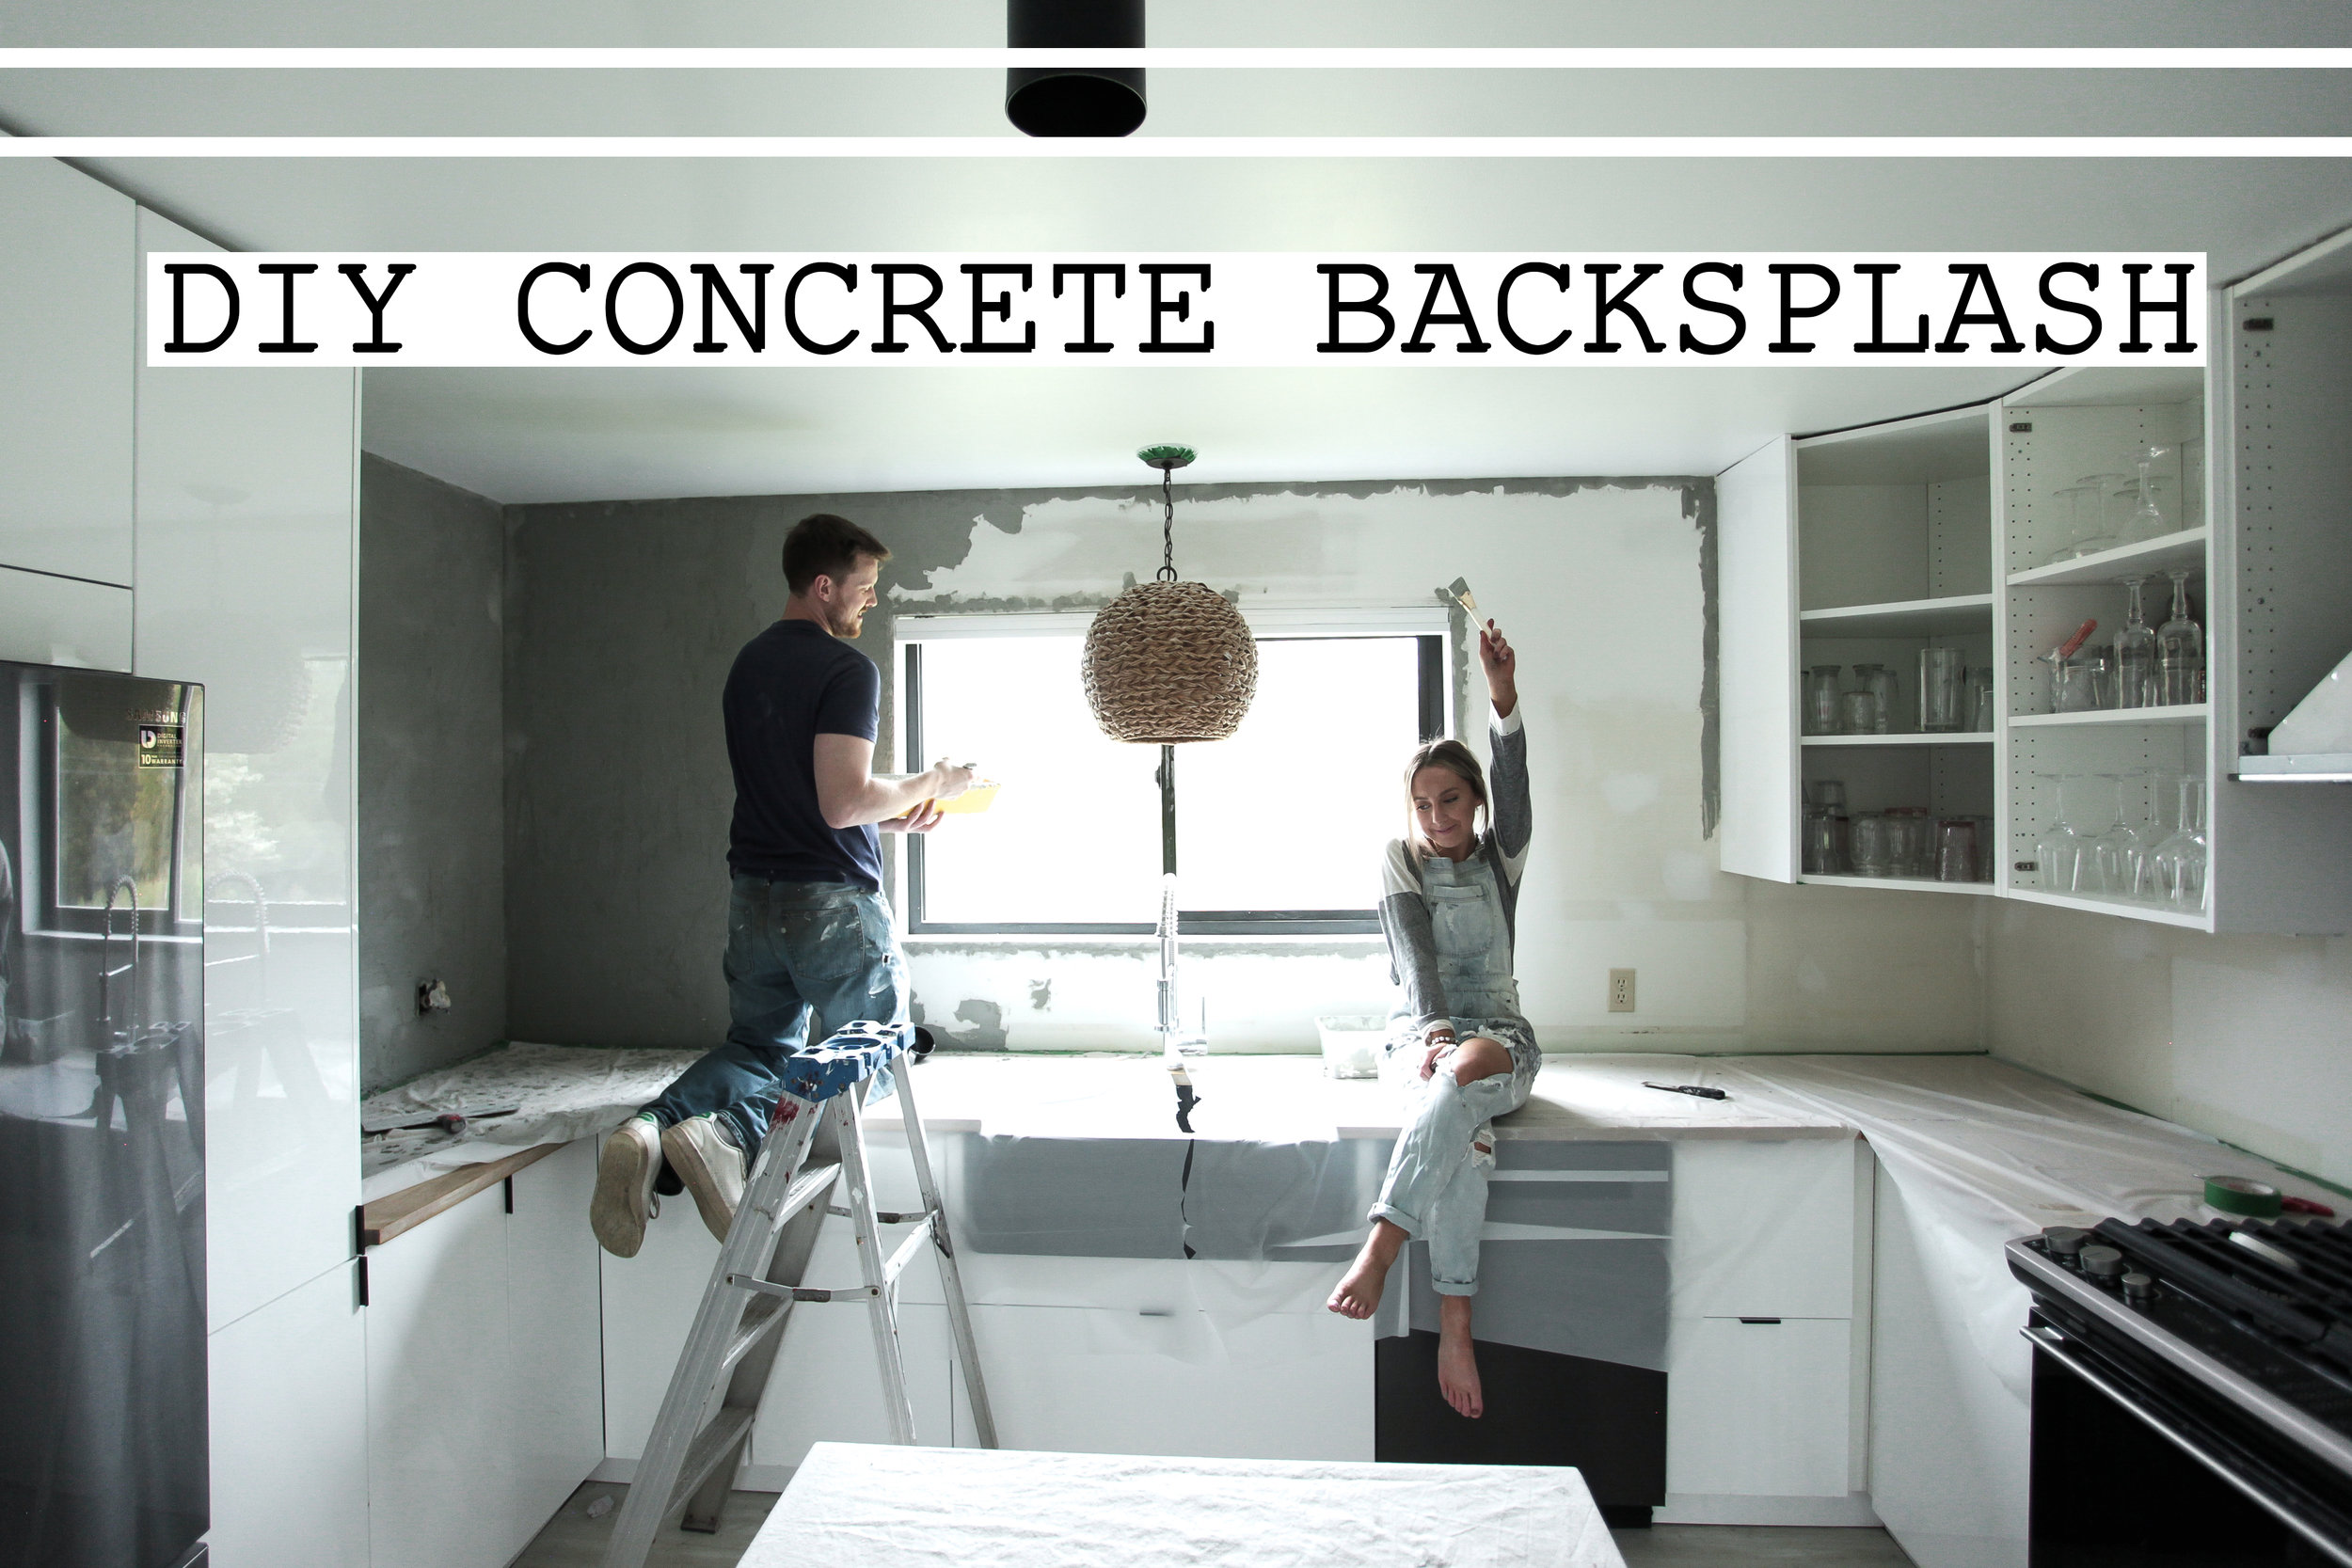 diy concrete backsplash .jpg